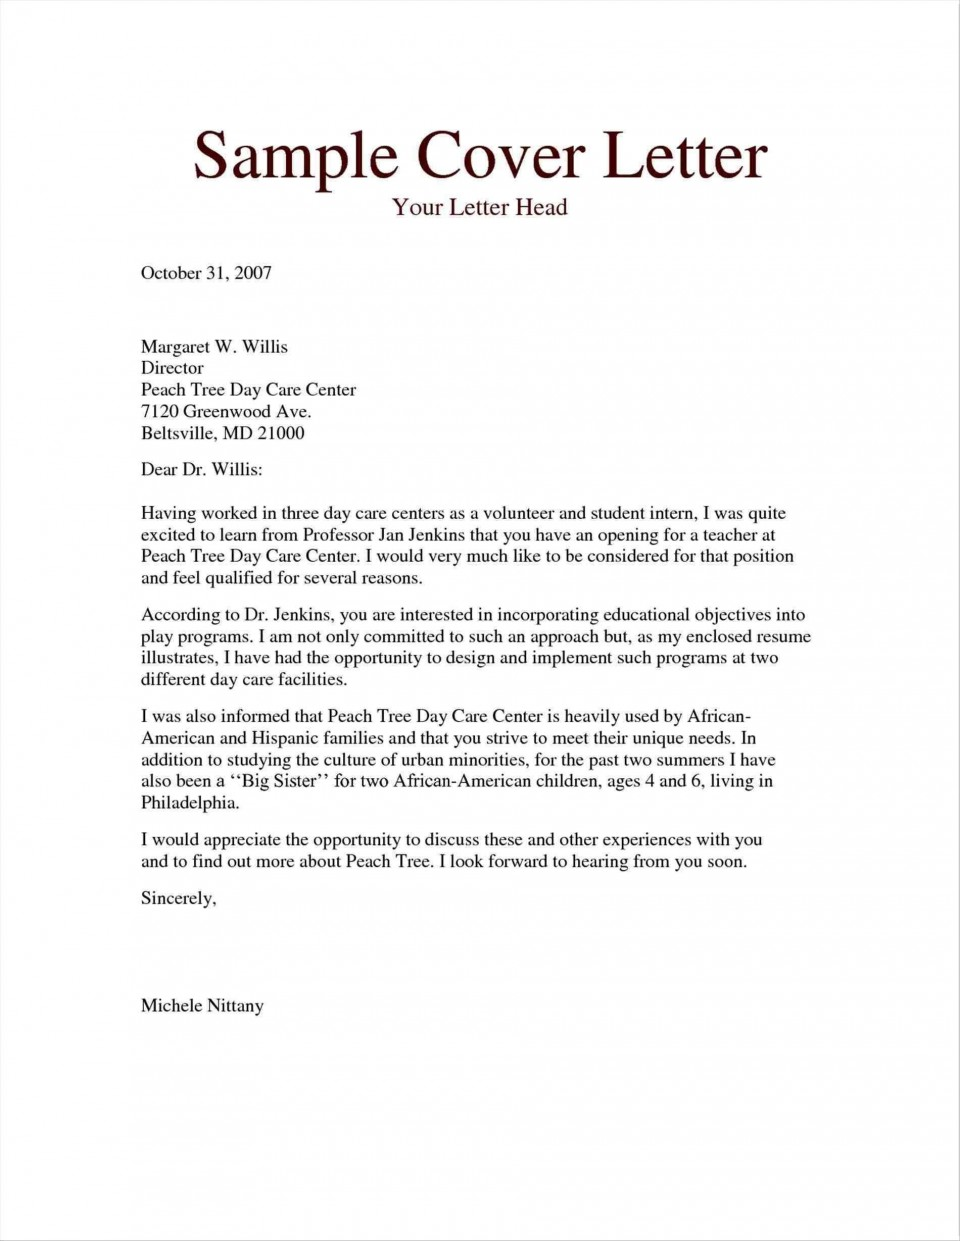 004 Fantastic Free Download Cover Letter Sample High Definition  For Fresher Pdf Template960